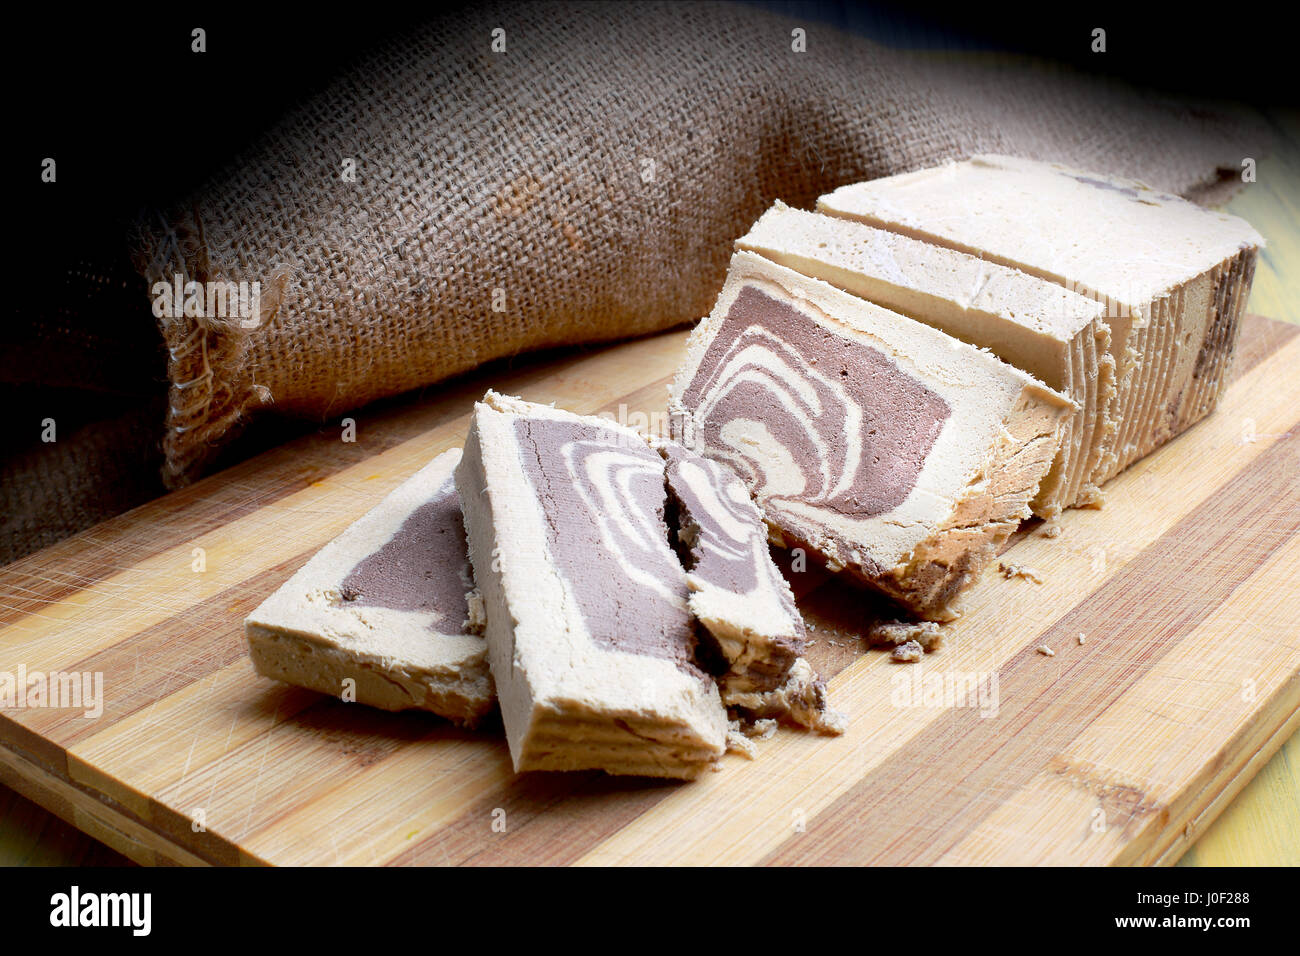 Helva is a common sweet in Turkey and the Middle East. - Stock Image